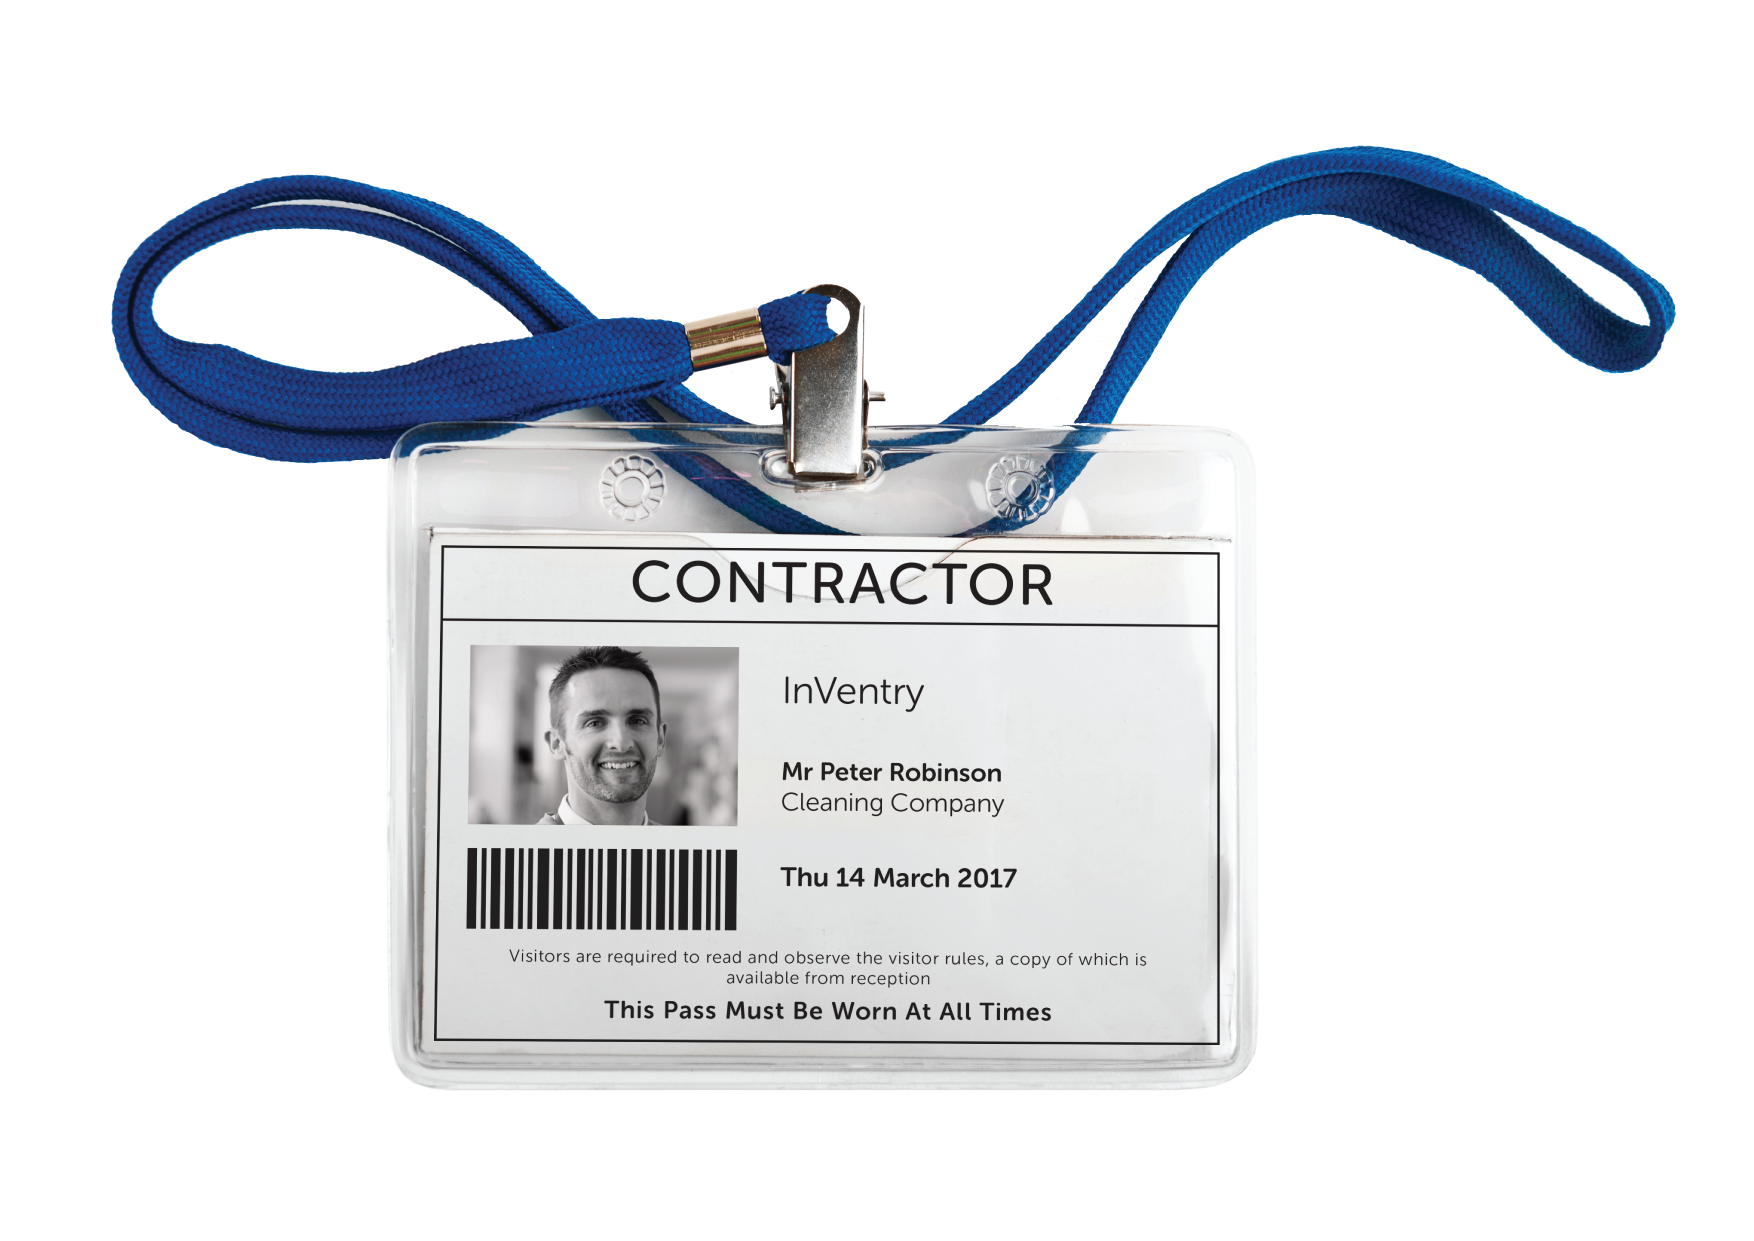 InVentry Contractor Management ID Cards